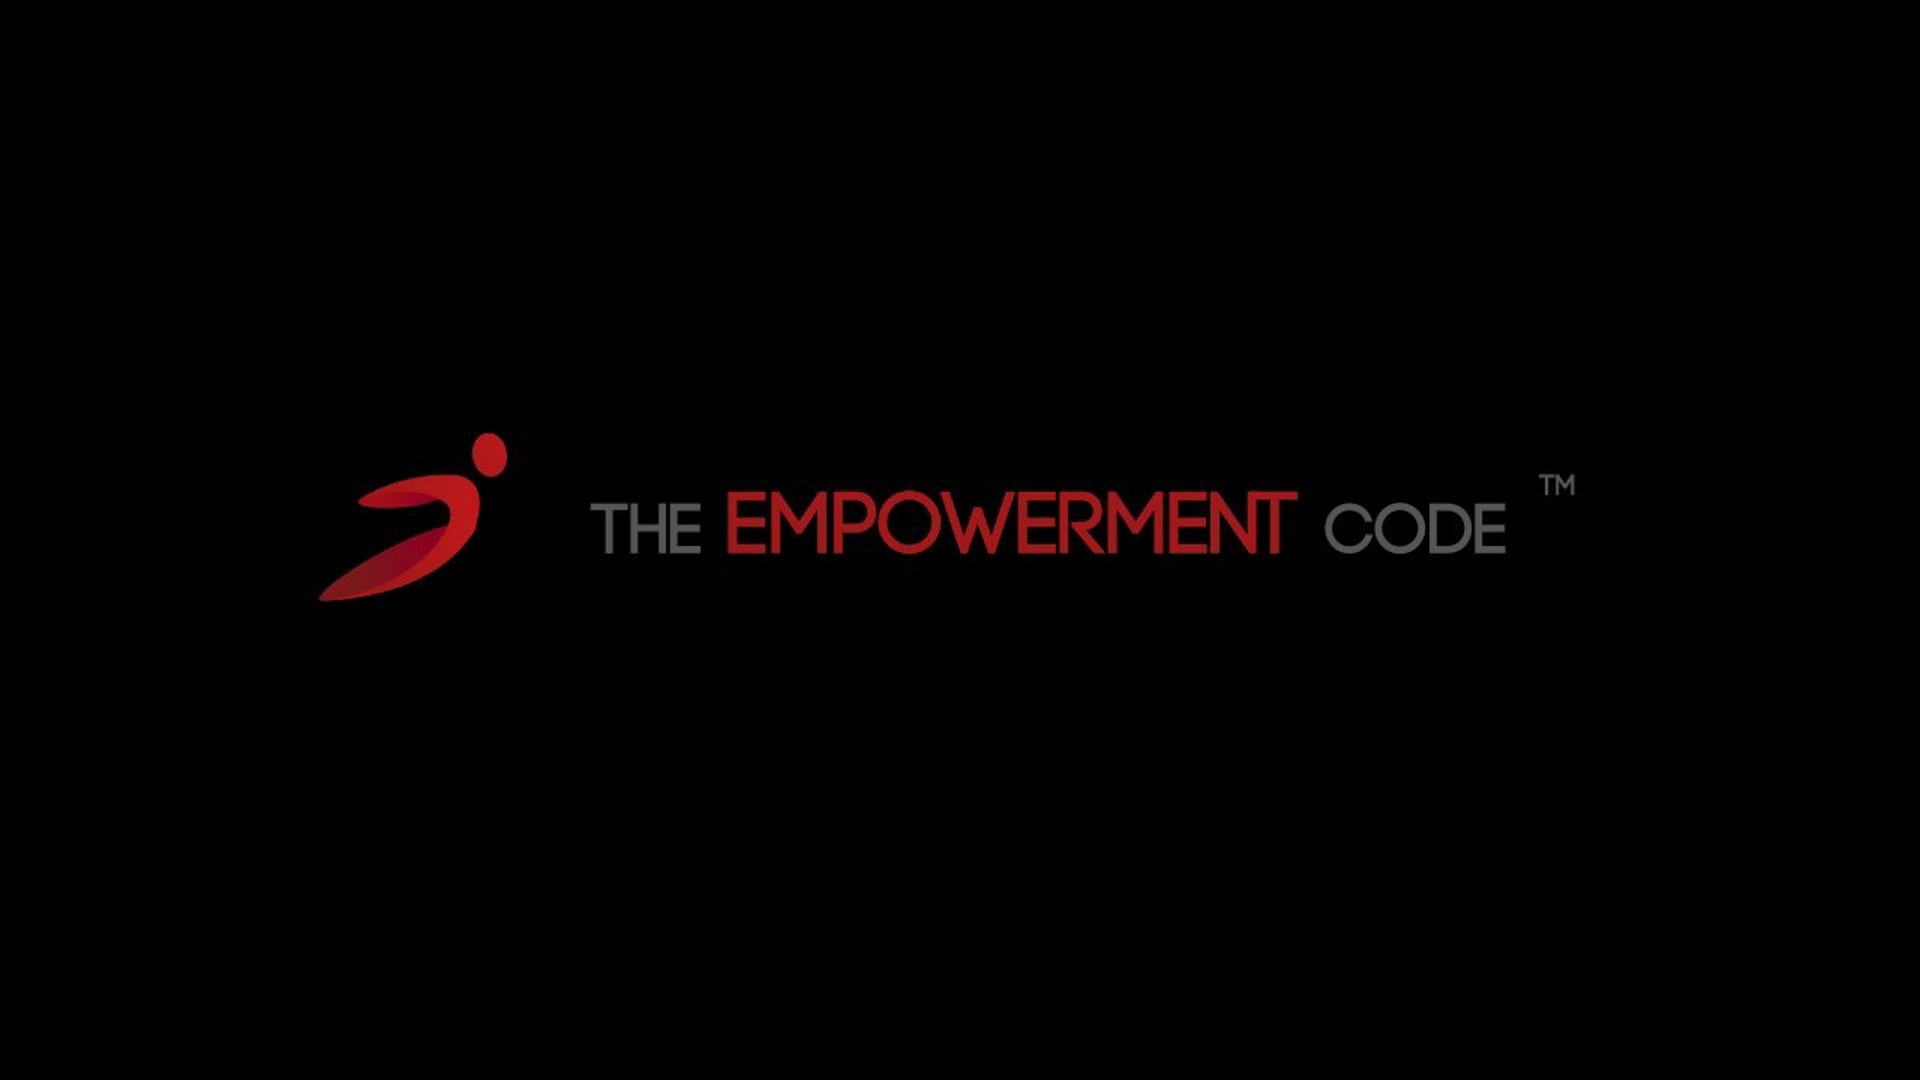 The Empowerment Code - Fluidity Chart